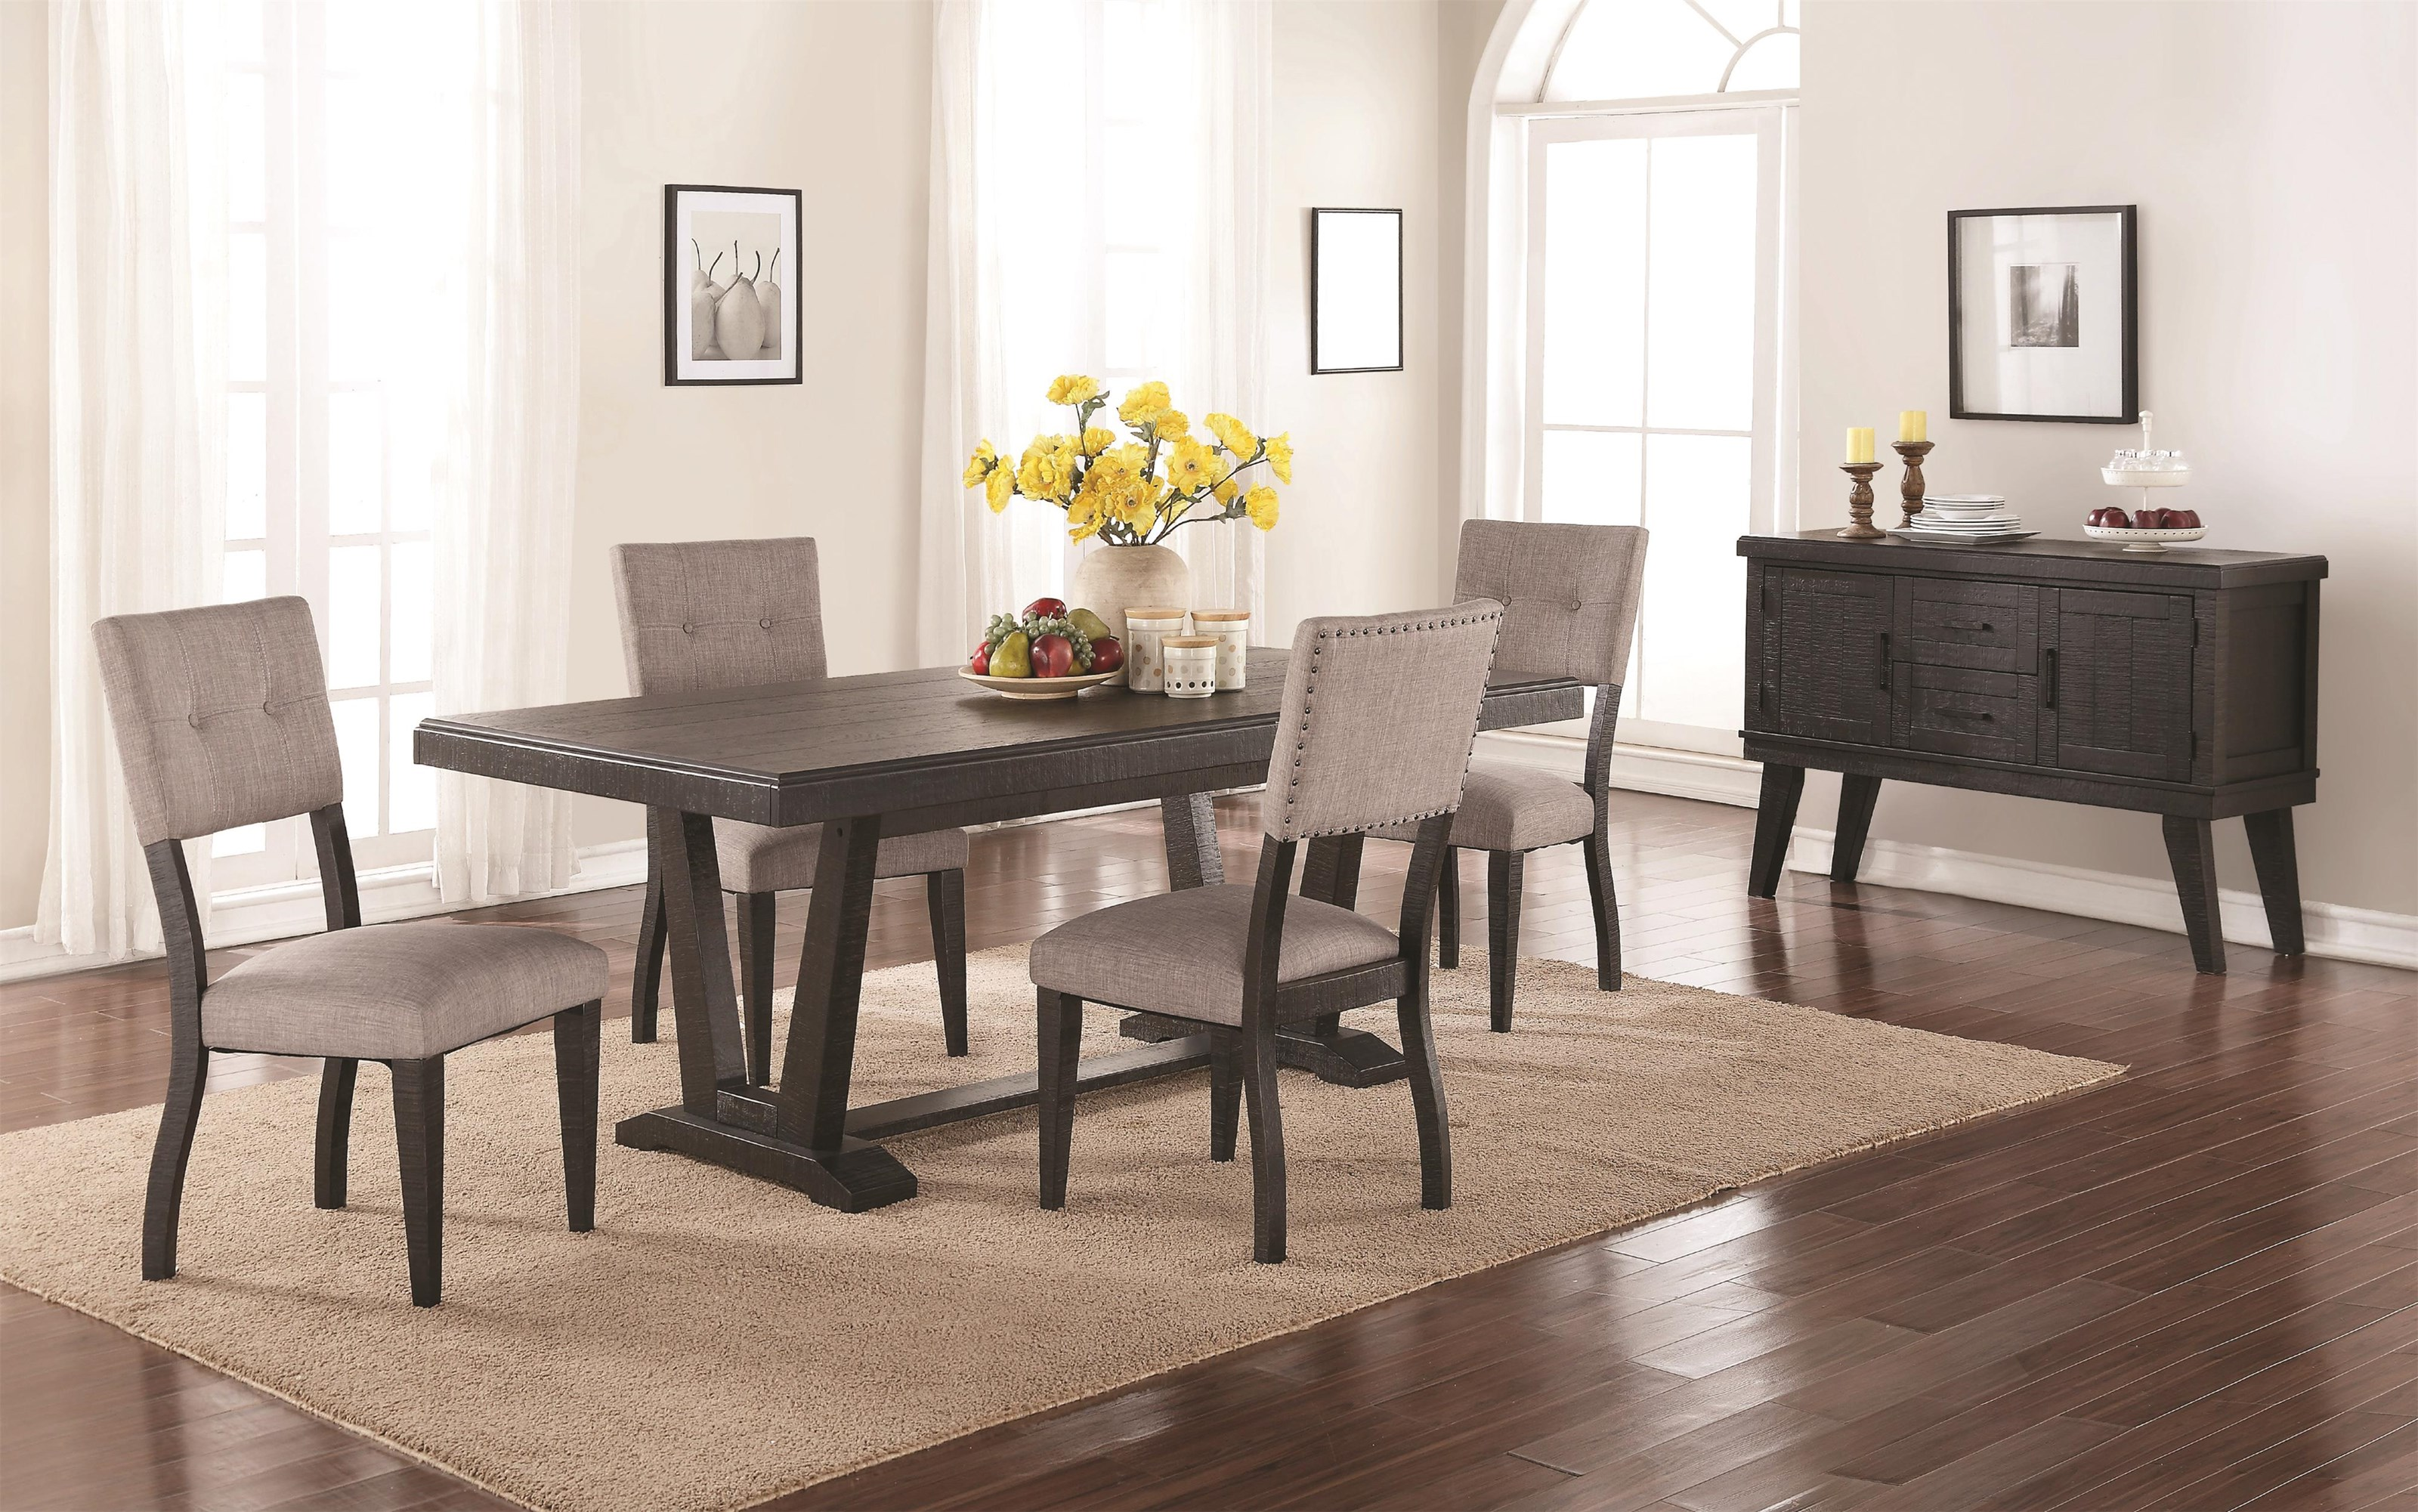 Forest Place Forest Place 5-Piece Dining Set by Holland House at Morris Home